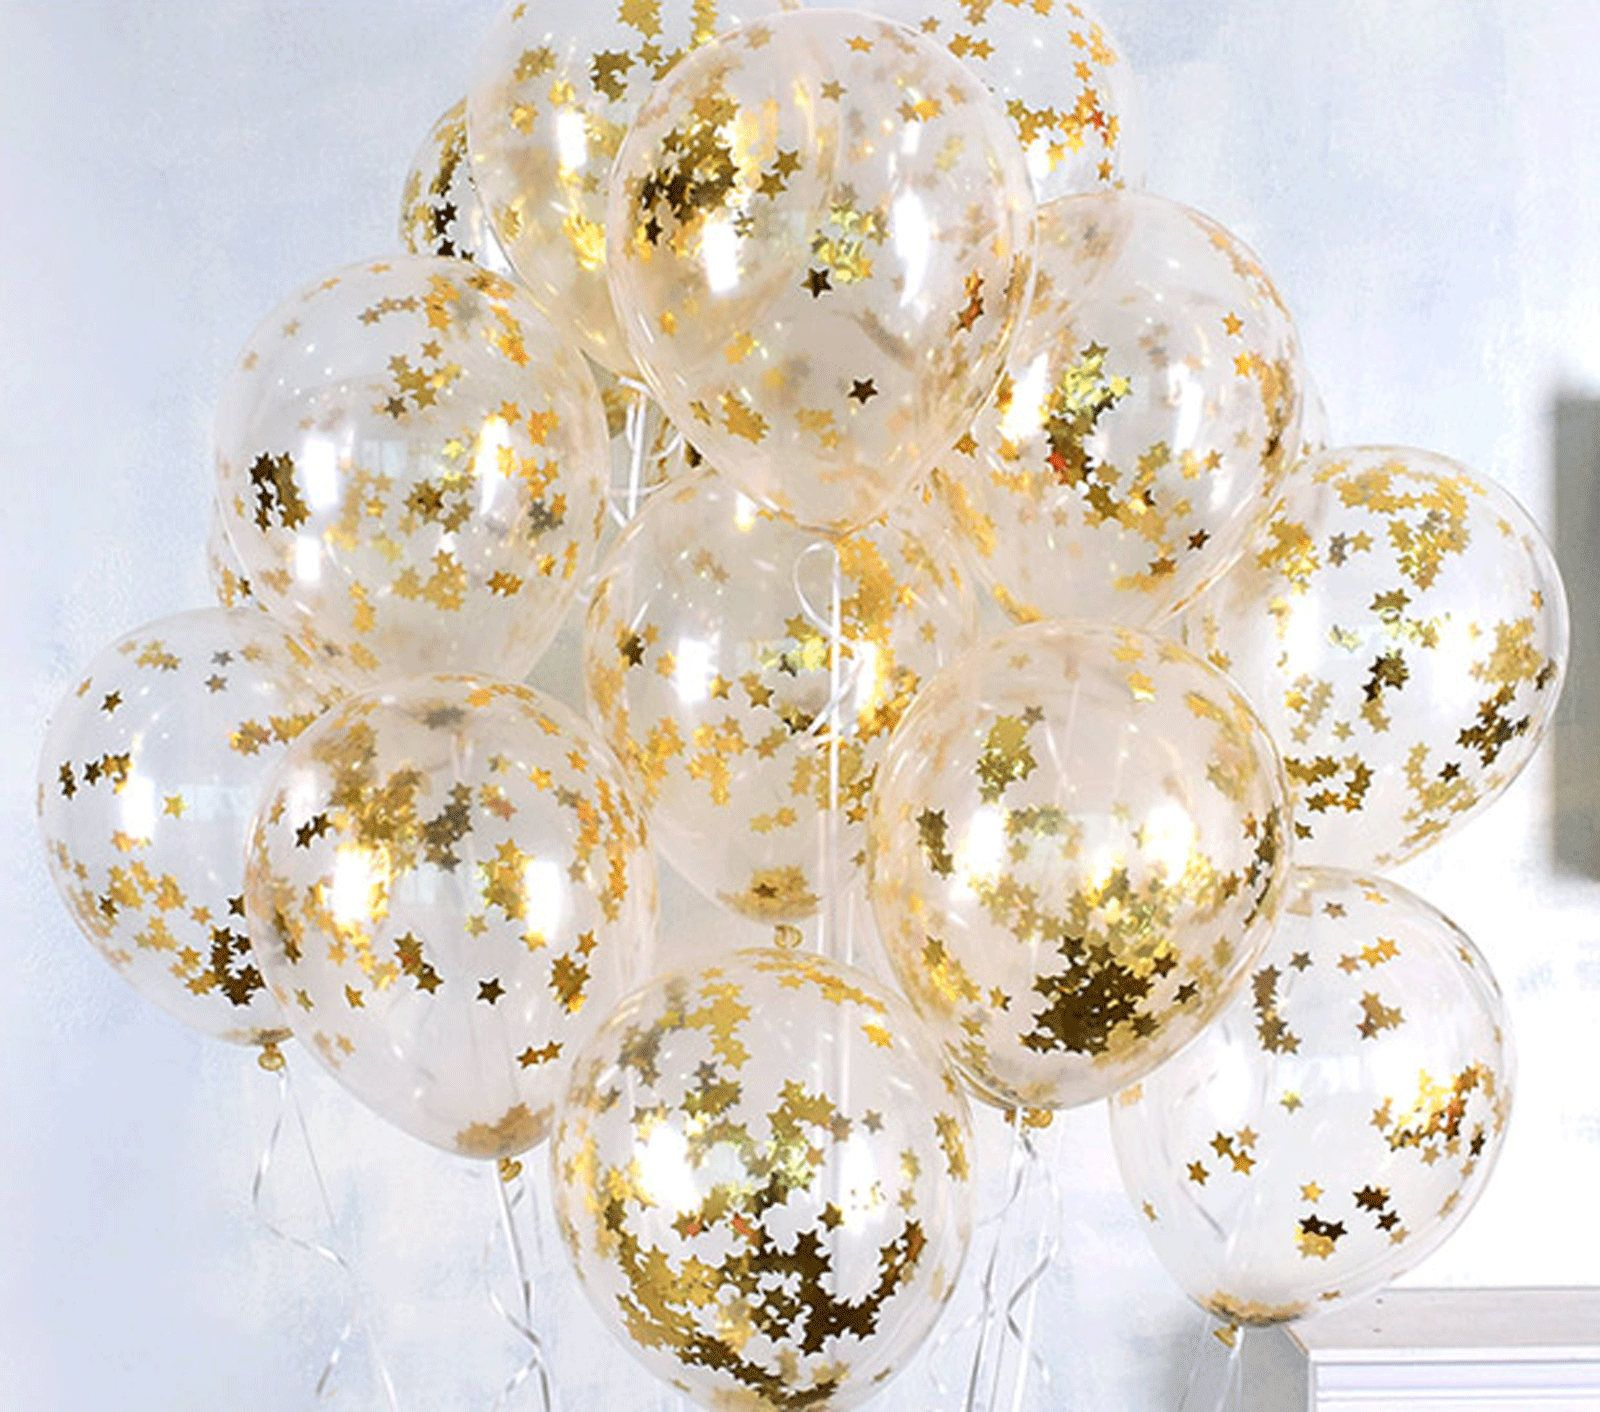 10X Clear Balloons Gold Star foil Confetti Transparent Balloons Happy Birthday Baby shower Wedding Party Supplies